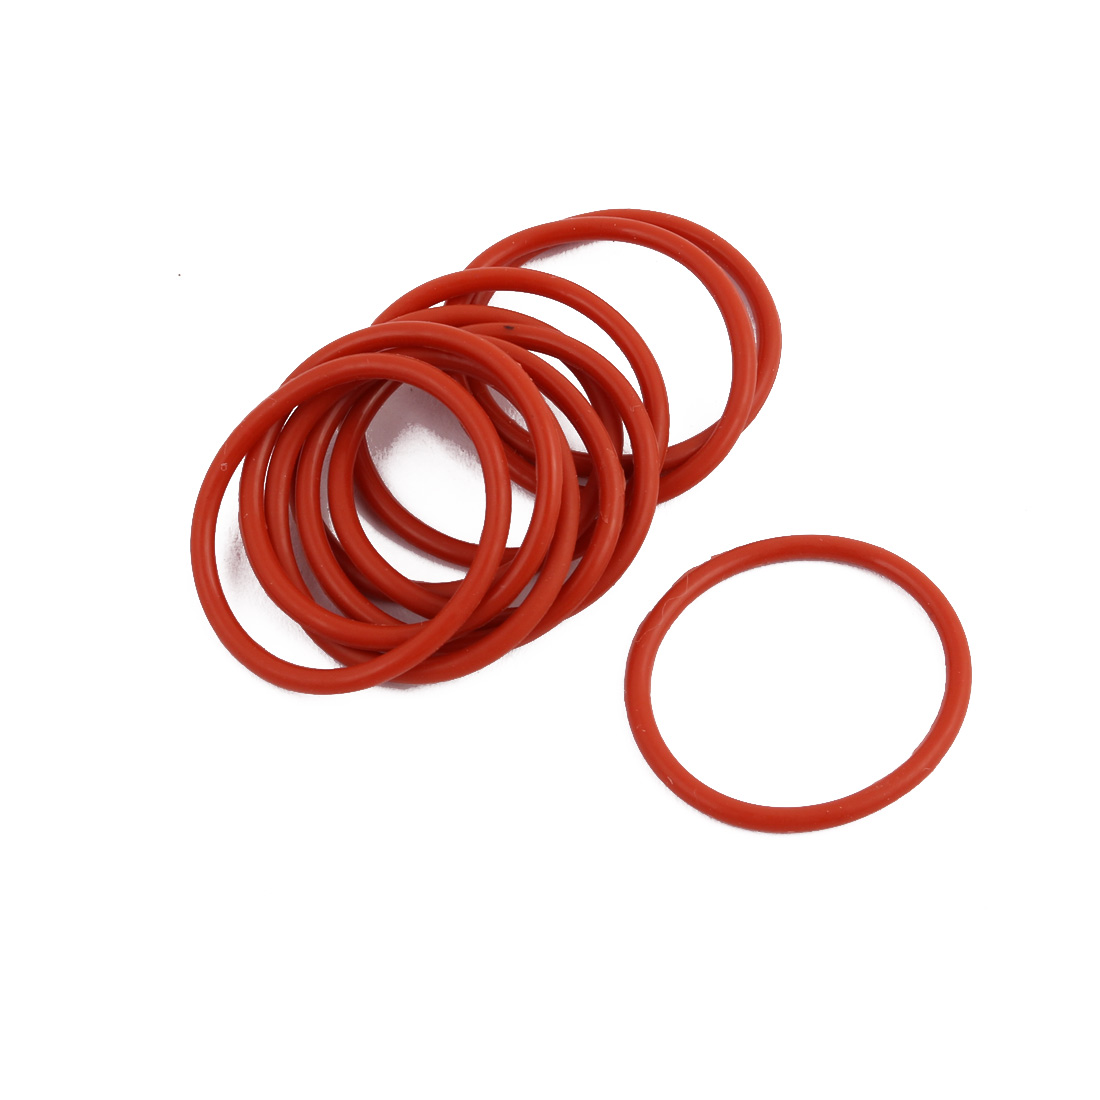 10pcs Red Round Nitrile Butadiene Rubber NBR O-Ring 26mm OD 1.9mm Width